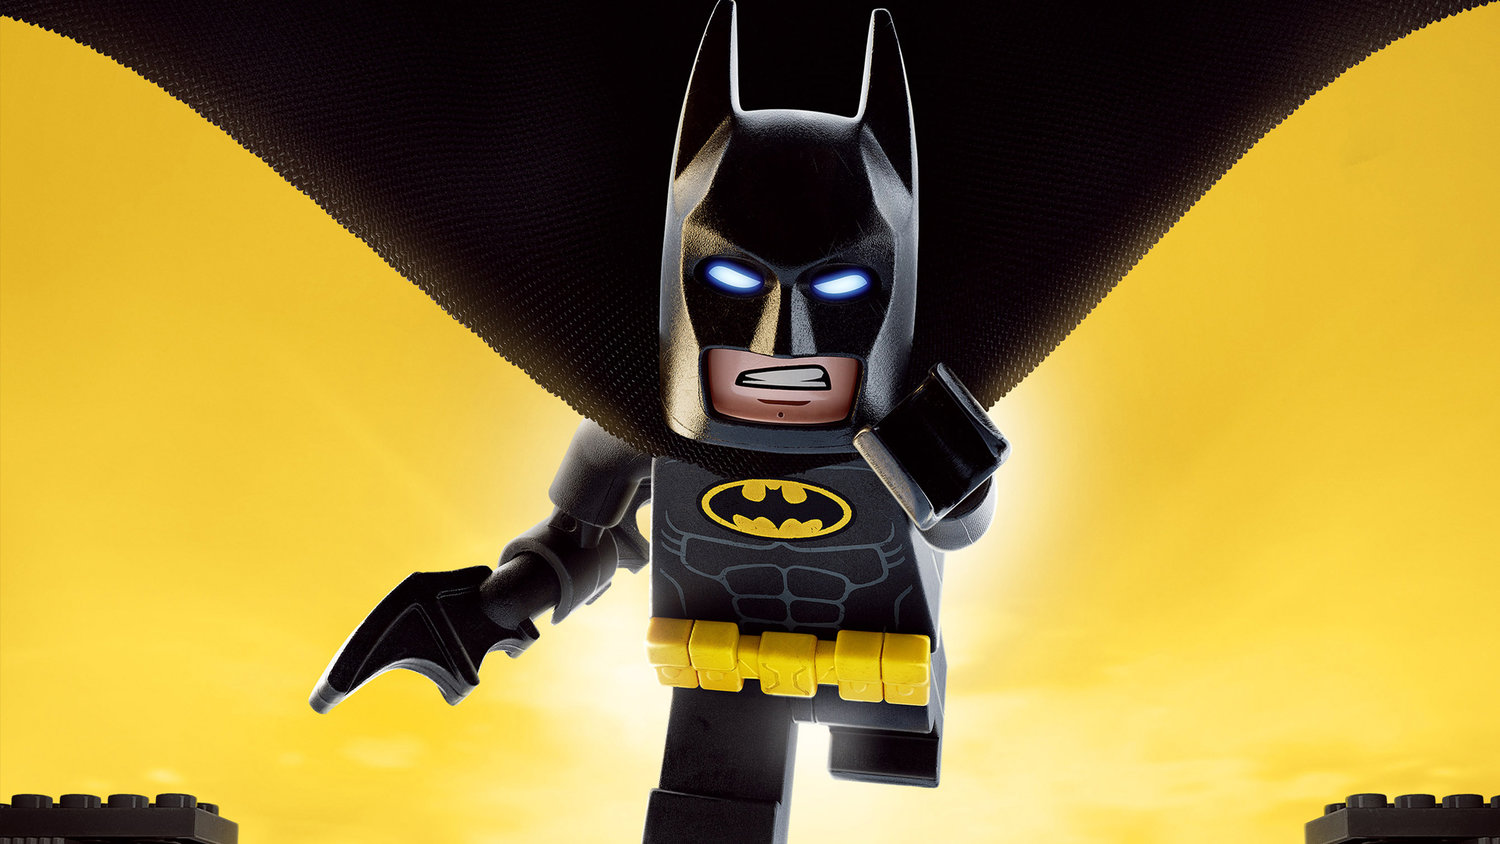 Stuff For Movie Buffs: Ep. 58 — THE LEGO BATMAN MOVIE Review